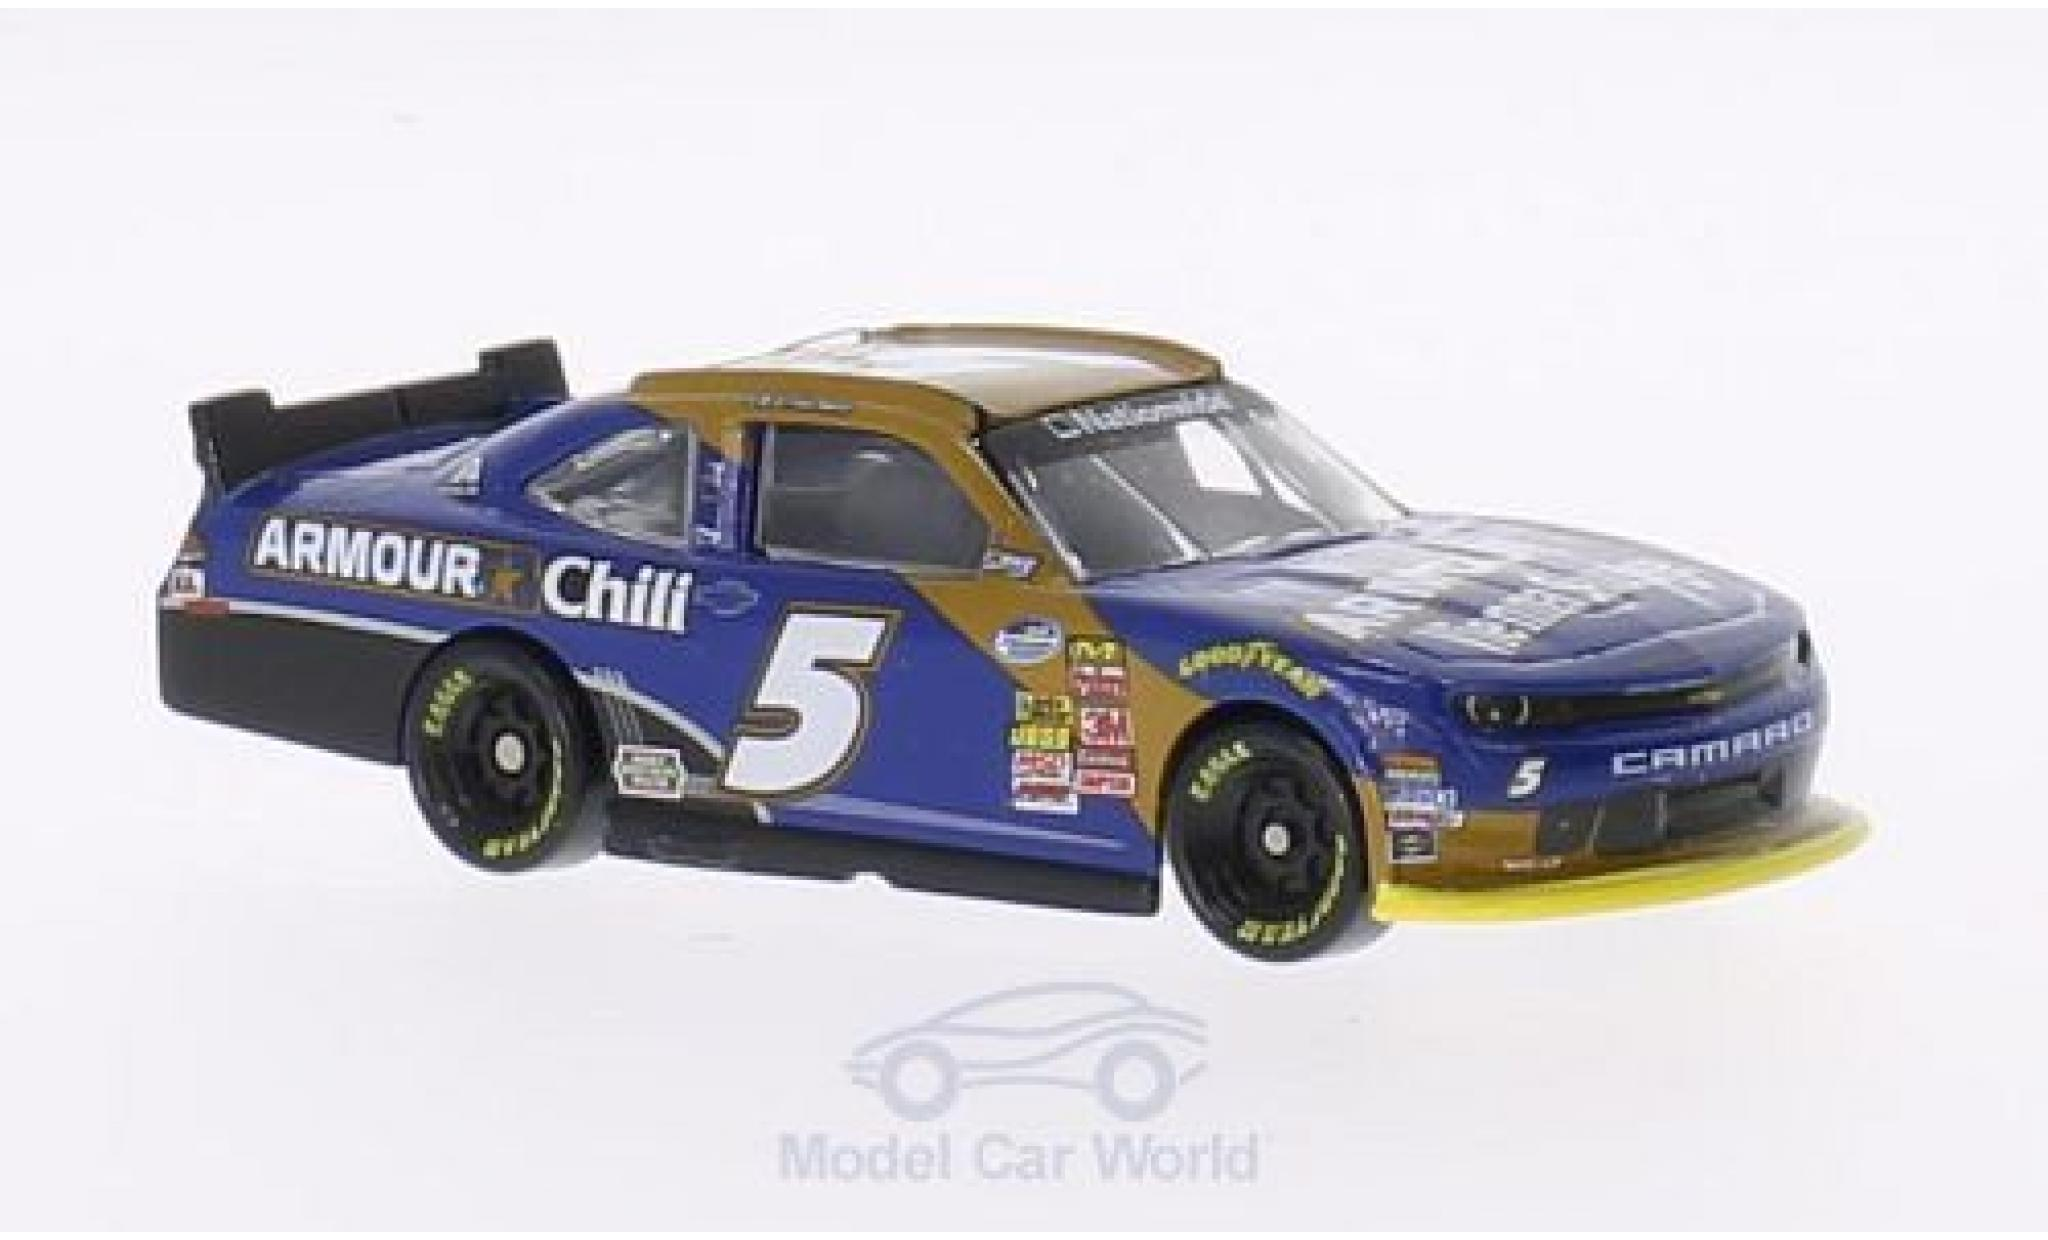 Chevrolet Camaro RS 1/64 Lionel Racing No.5 JR Motorsports Armour Foods Nascar 2014 K.Harvick